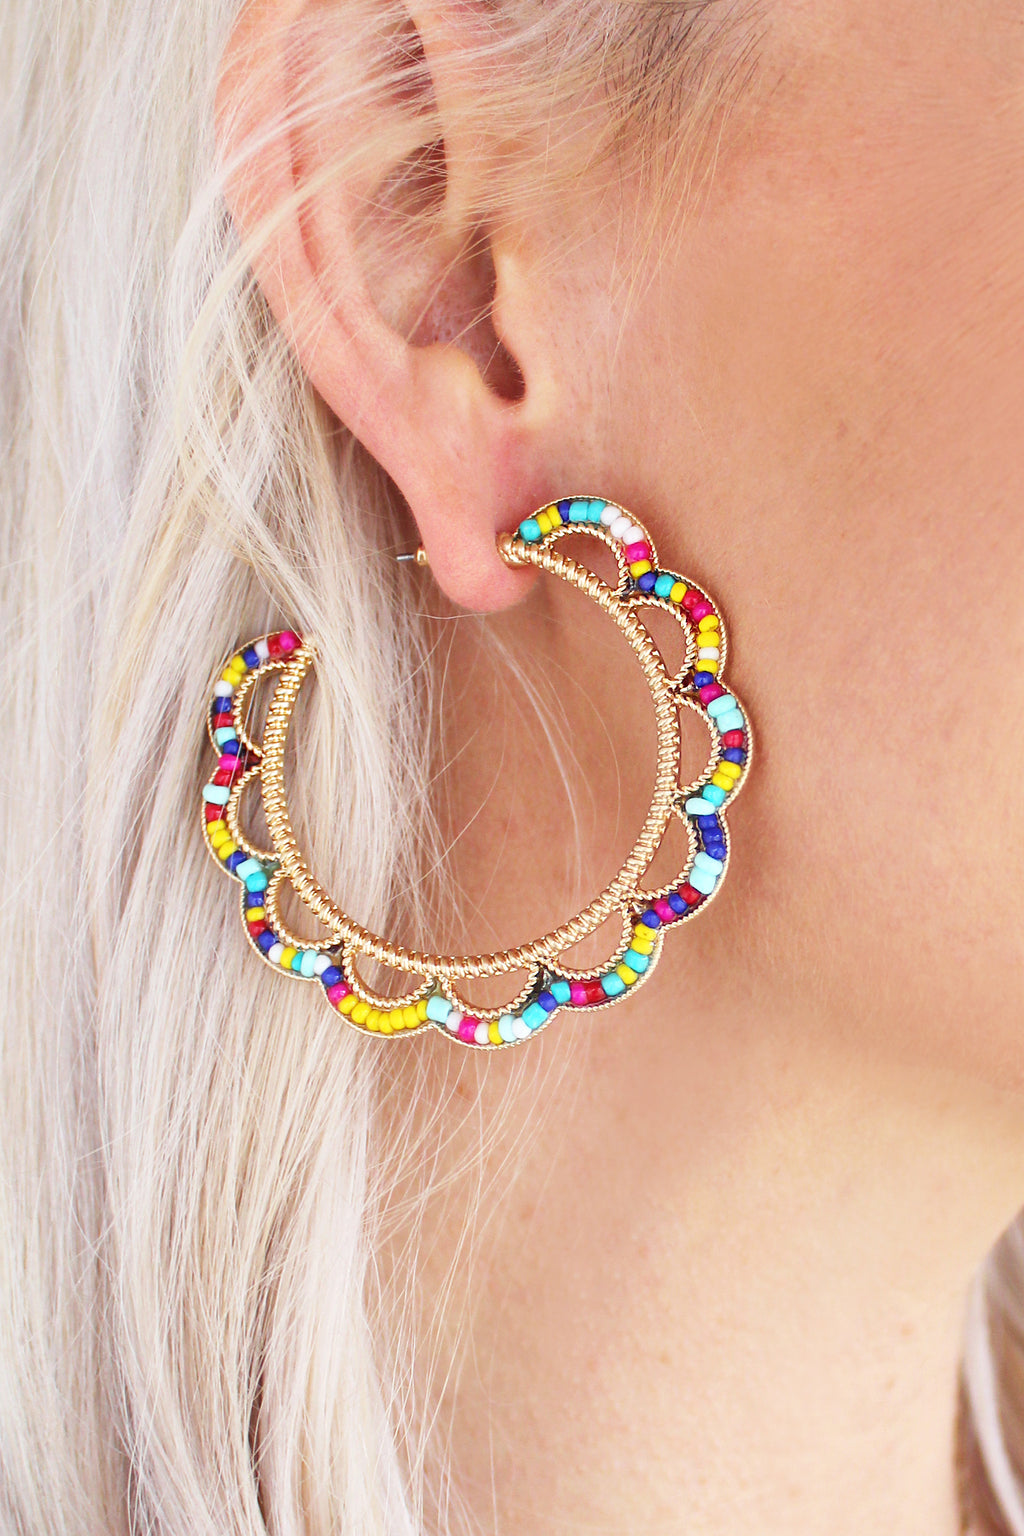 Multicolored Scalloped Hoop Earrings, Colorful Beaded Open Hoop Earrings, Cute Summer Earrings - Shop Trendy & Affordable Accessories Now at Kendry Collection Boutique